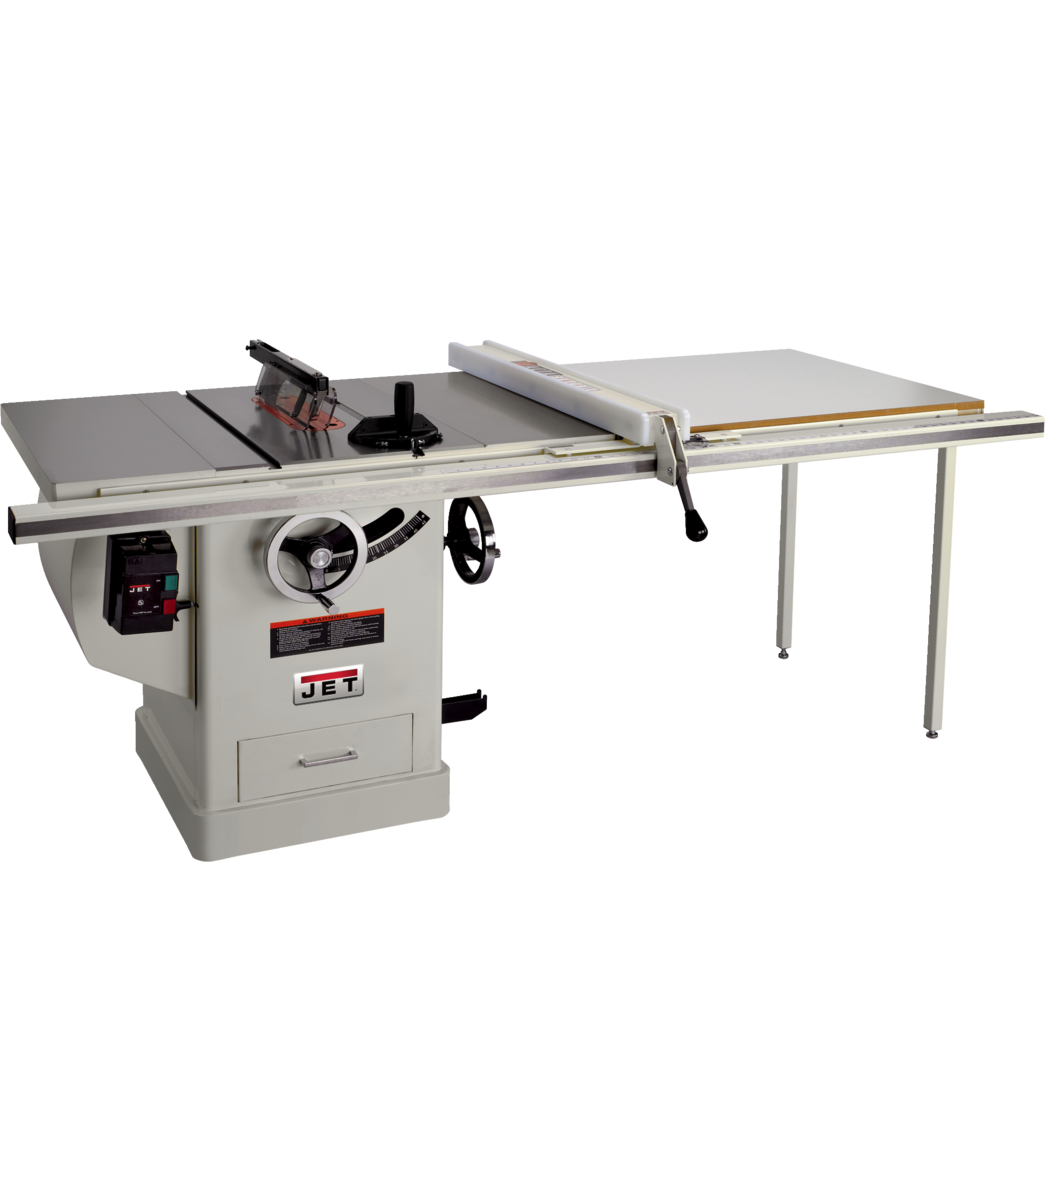 "Jet Deluxe Xacta® Saw 5HP, 1Ph, 50"" RIP 708677PK"